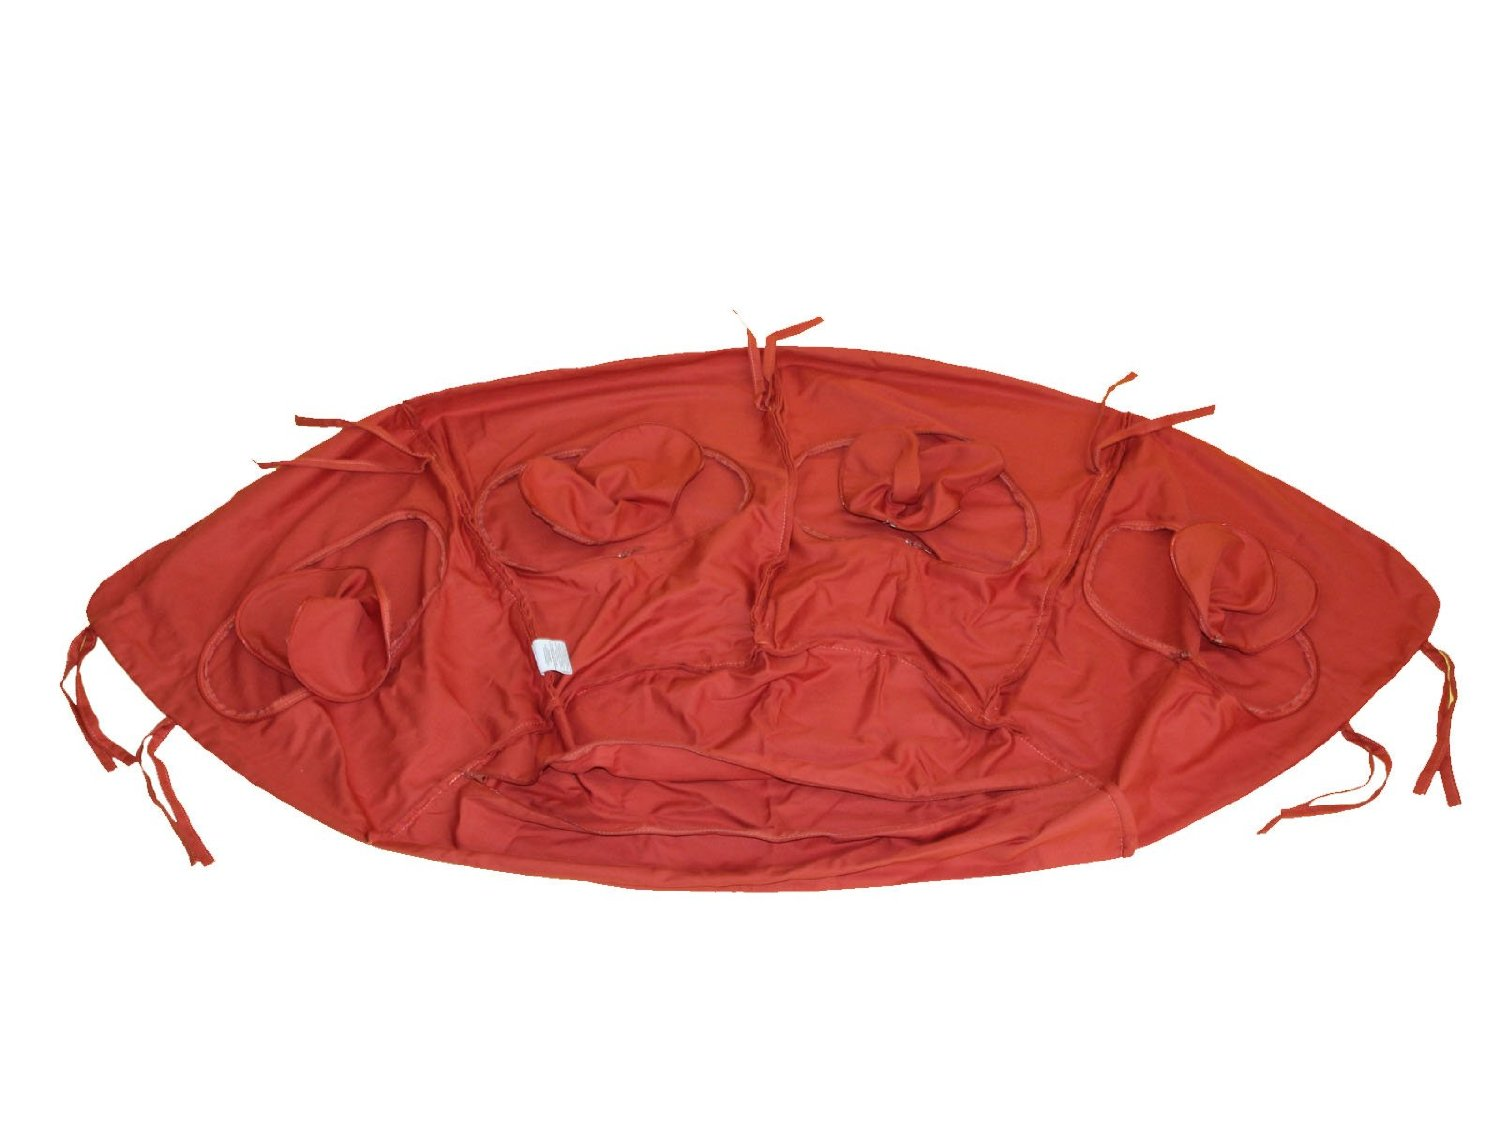 Globo terracotta cushion cover